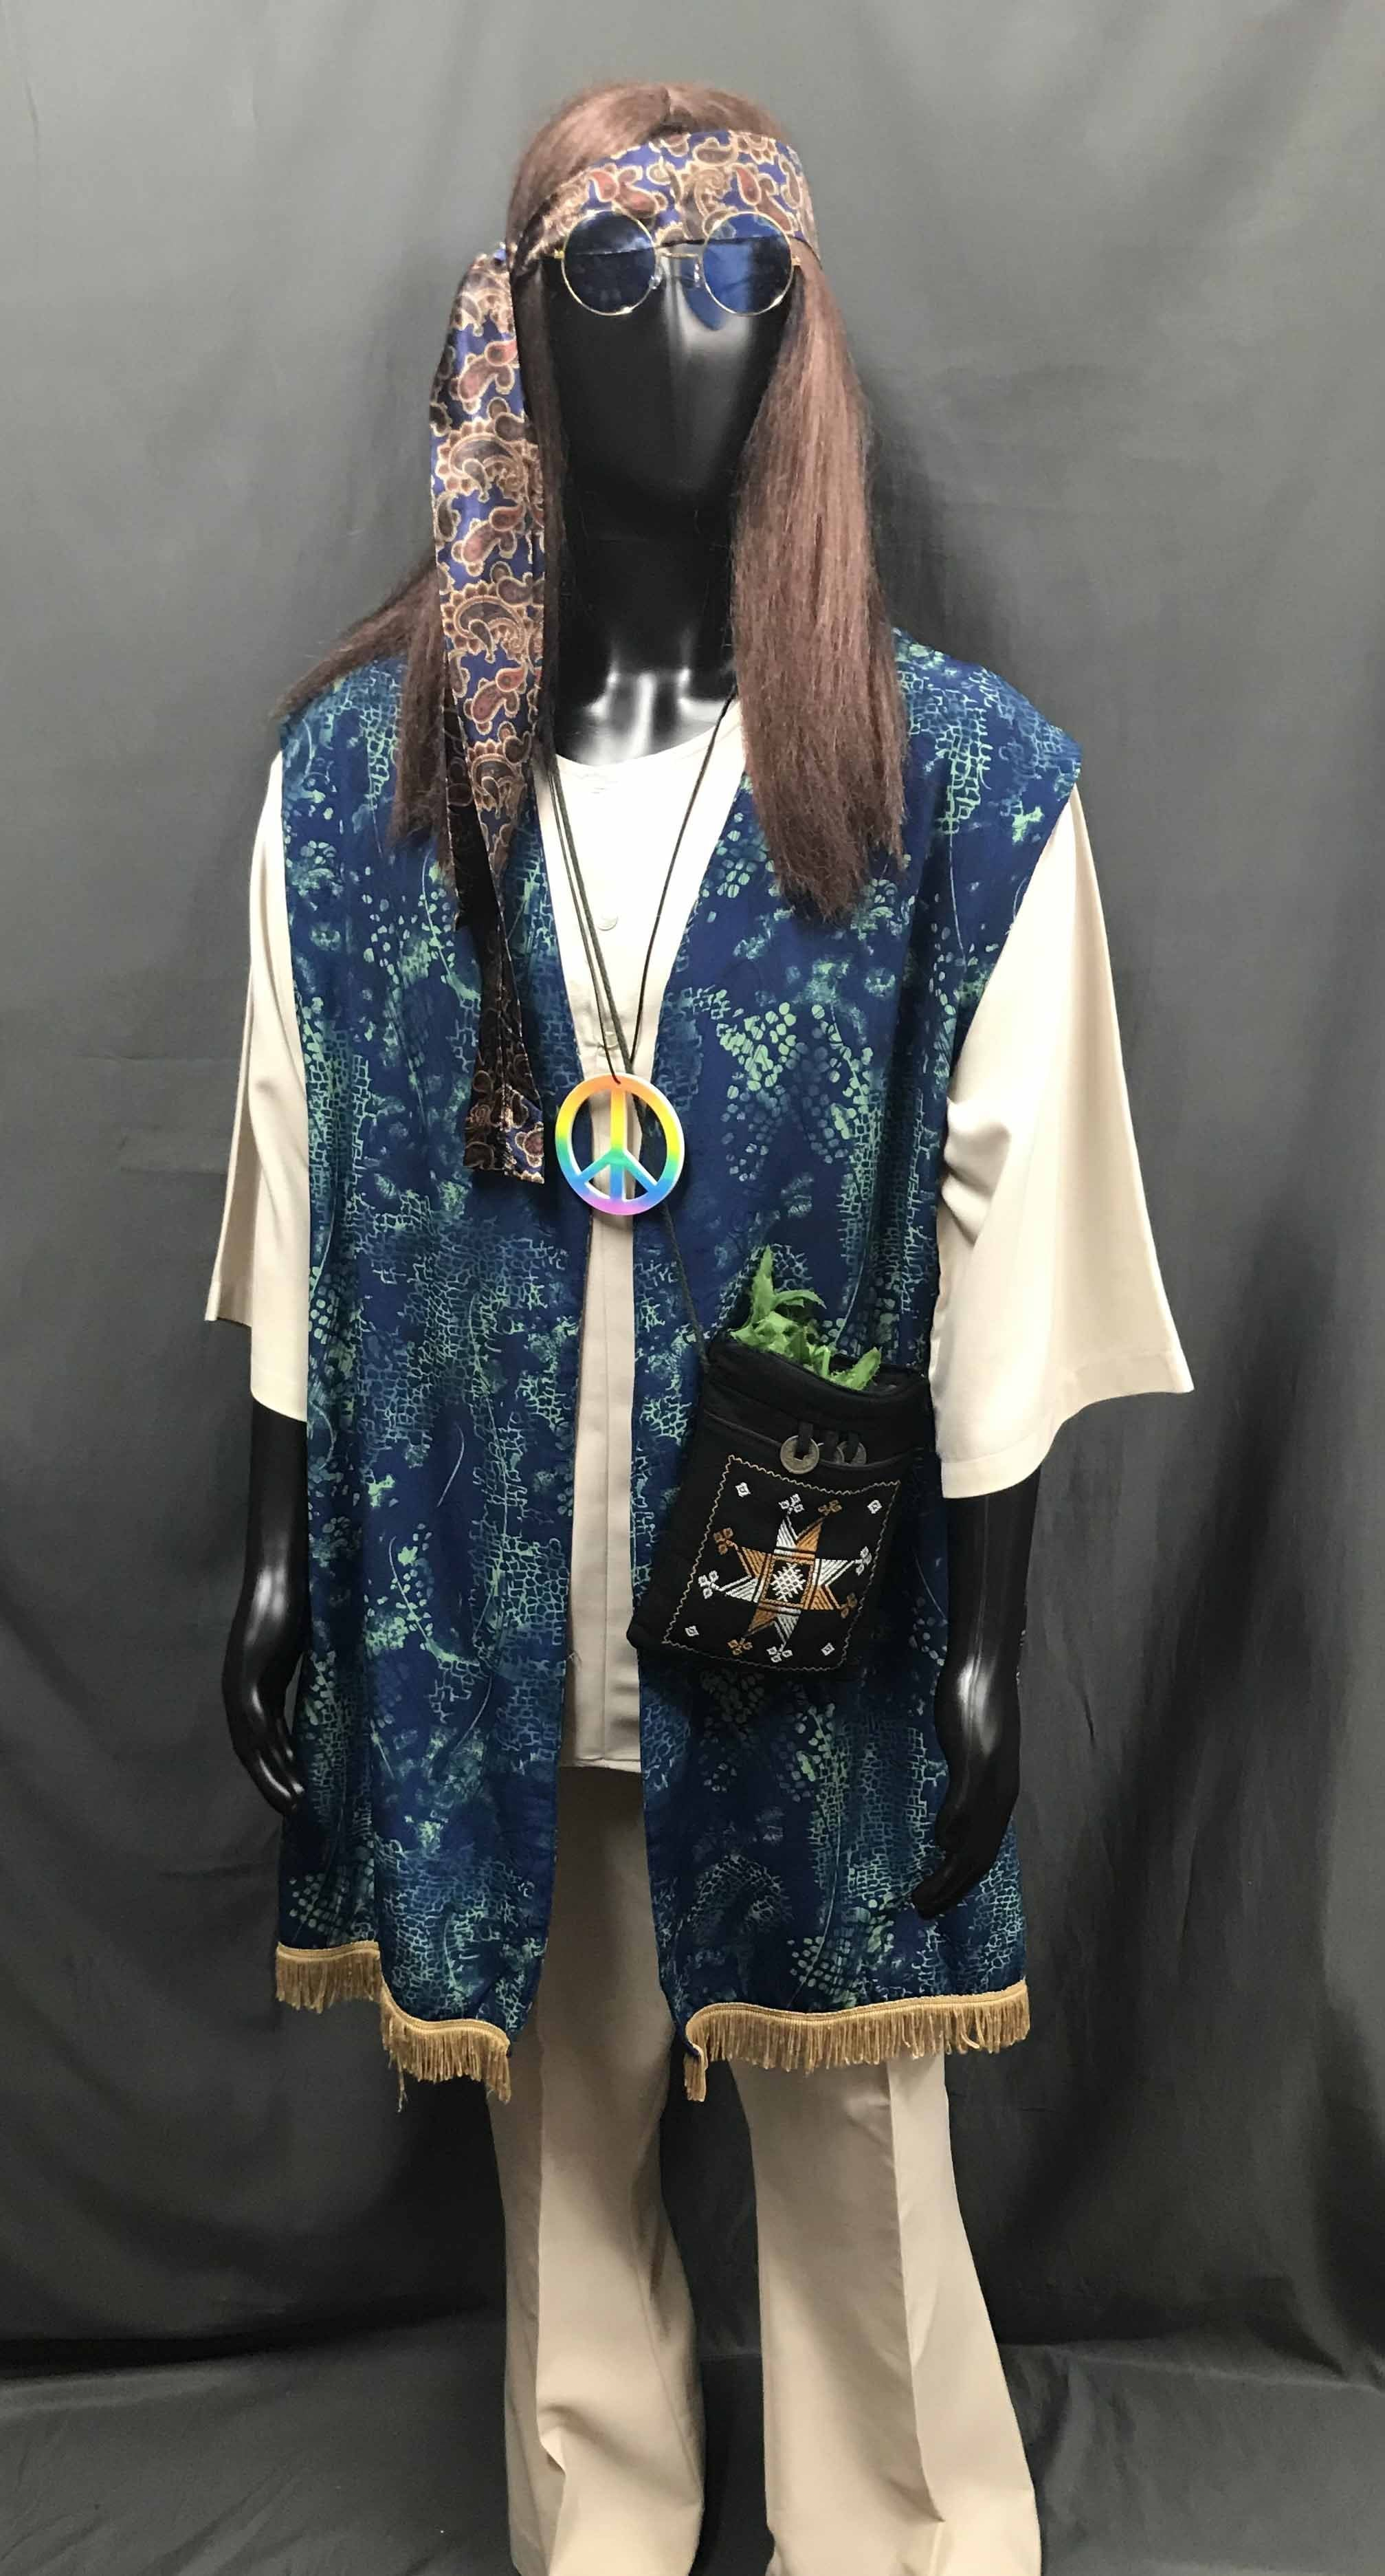 60-70s Mens Hippie Costume - Blue Vest with Gold Trim with Beige Flares - Hire - The Costume Company | Fancy Dress Costumes Hire and Purchase Brisbane and Australia